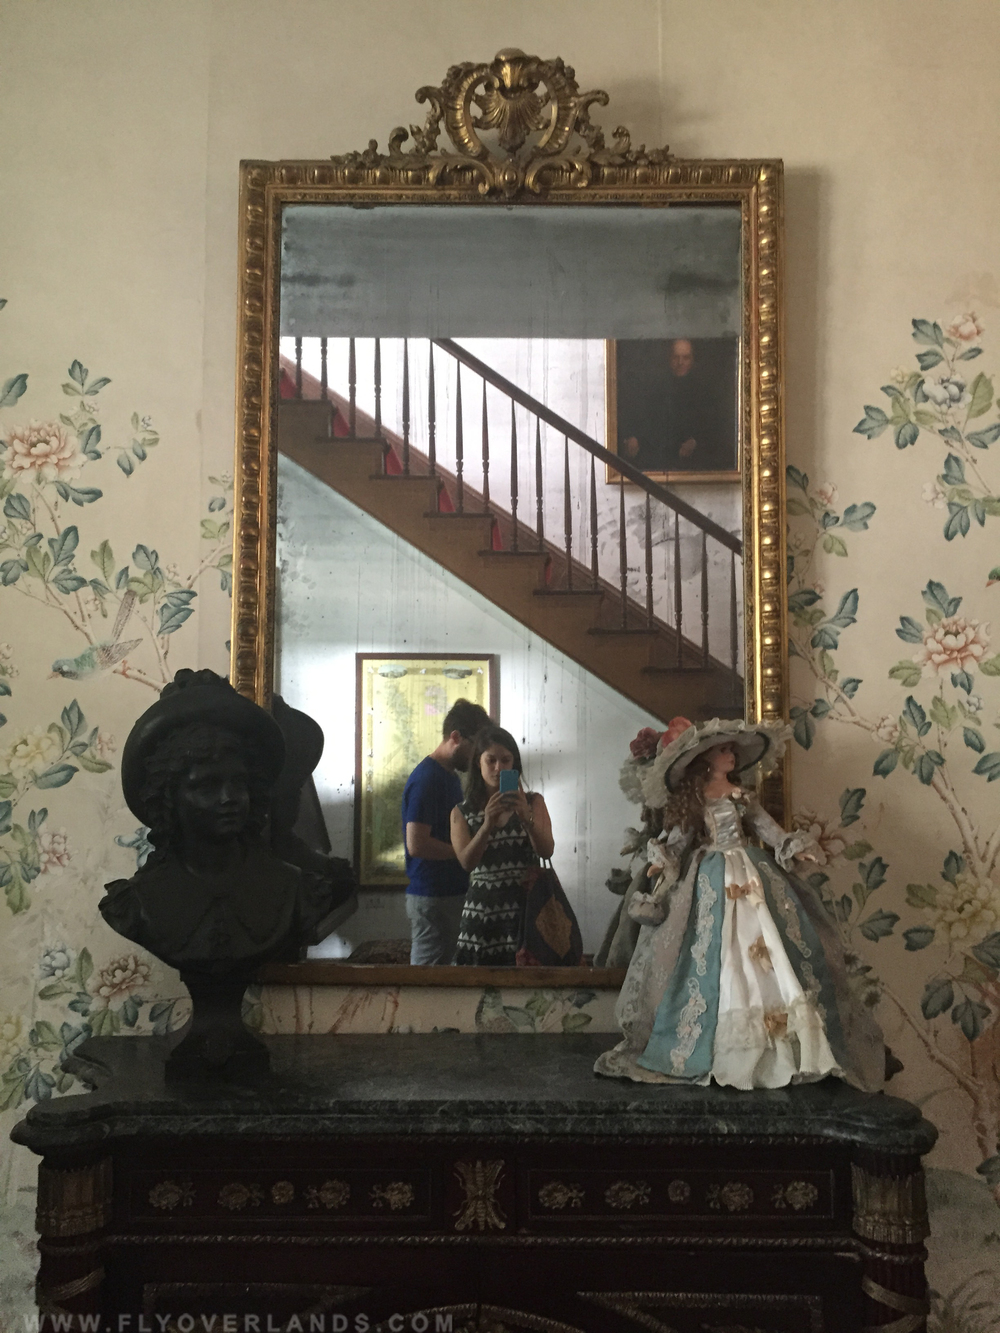 Anyone there? Tour guides suggest taking two photos in this haunted mirror.